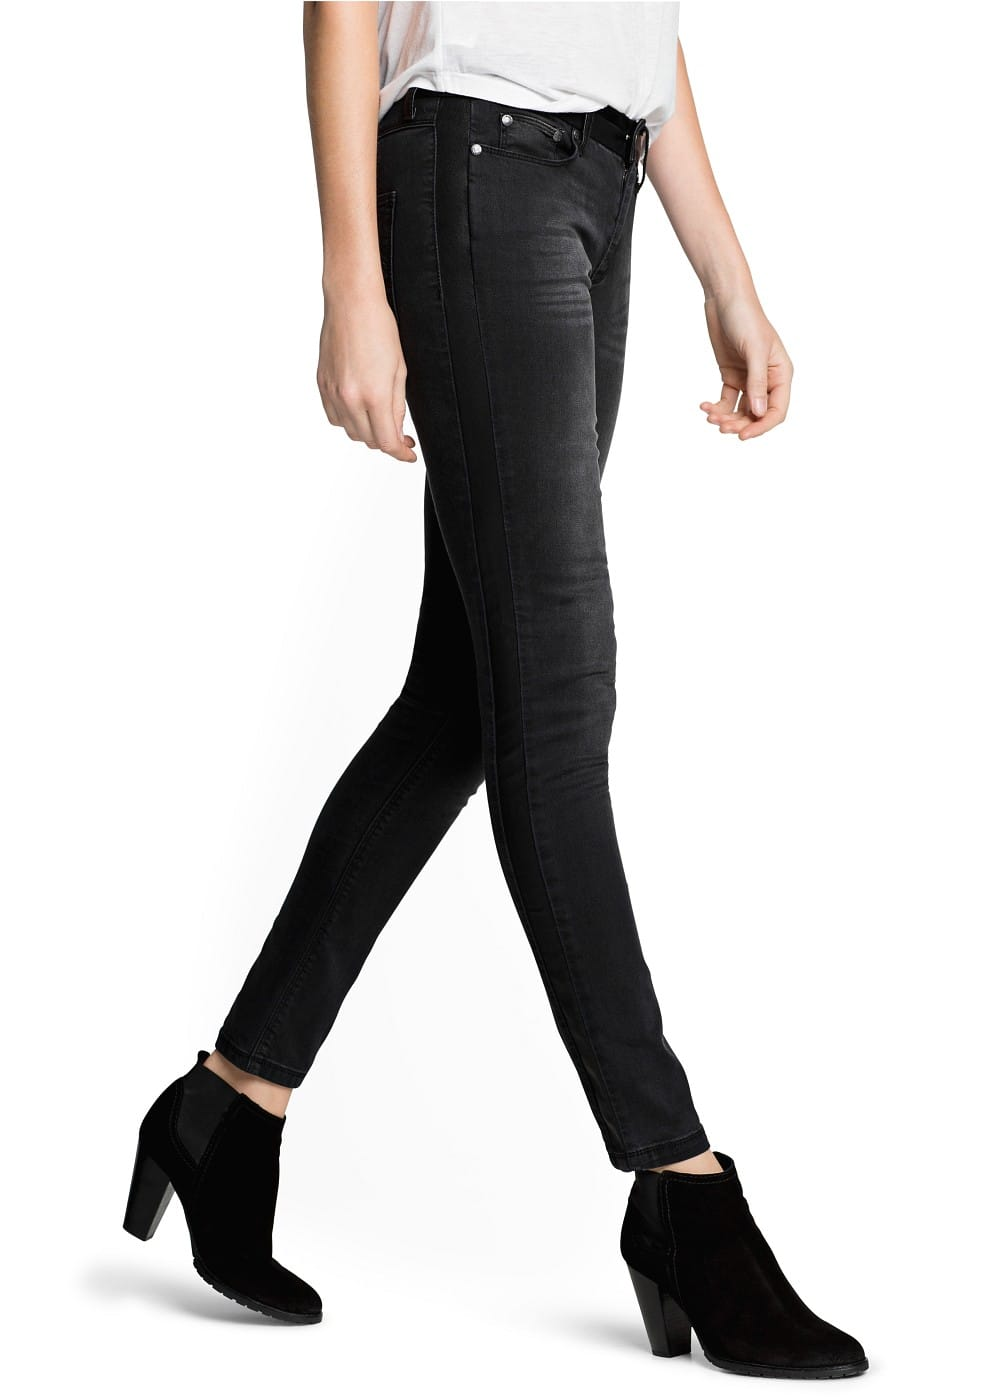 Super slim-fit black Helmut jeans